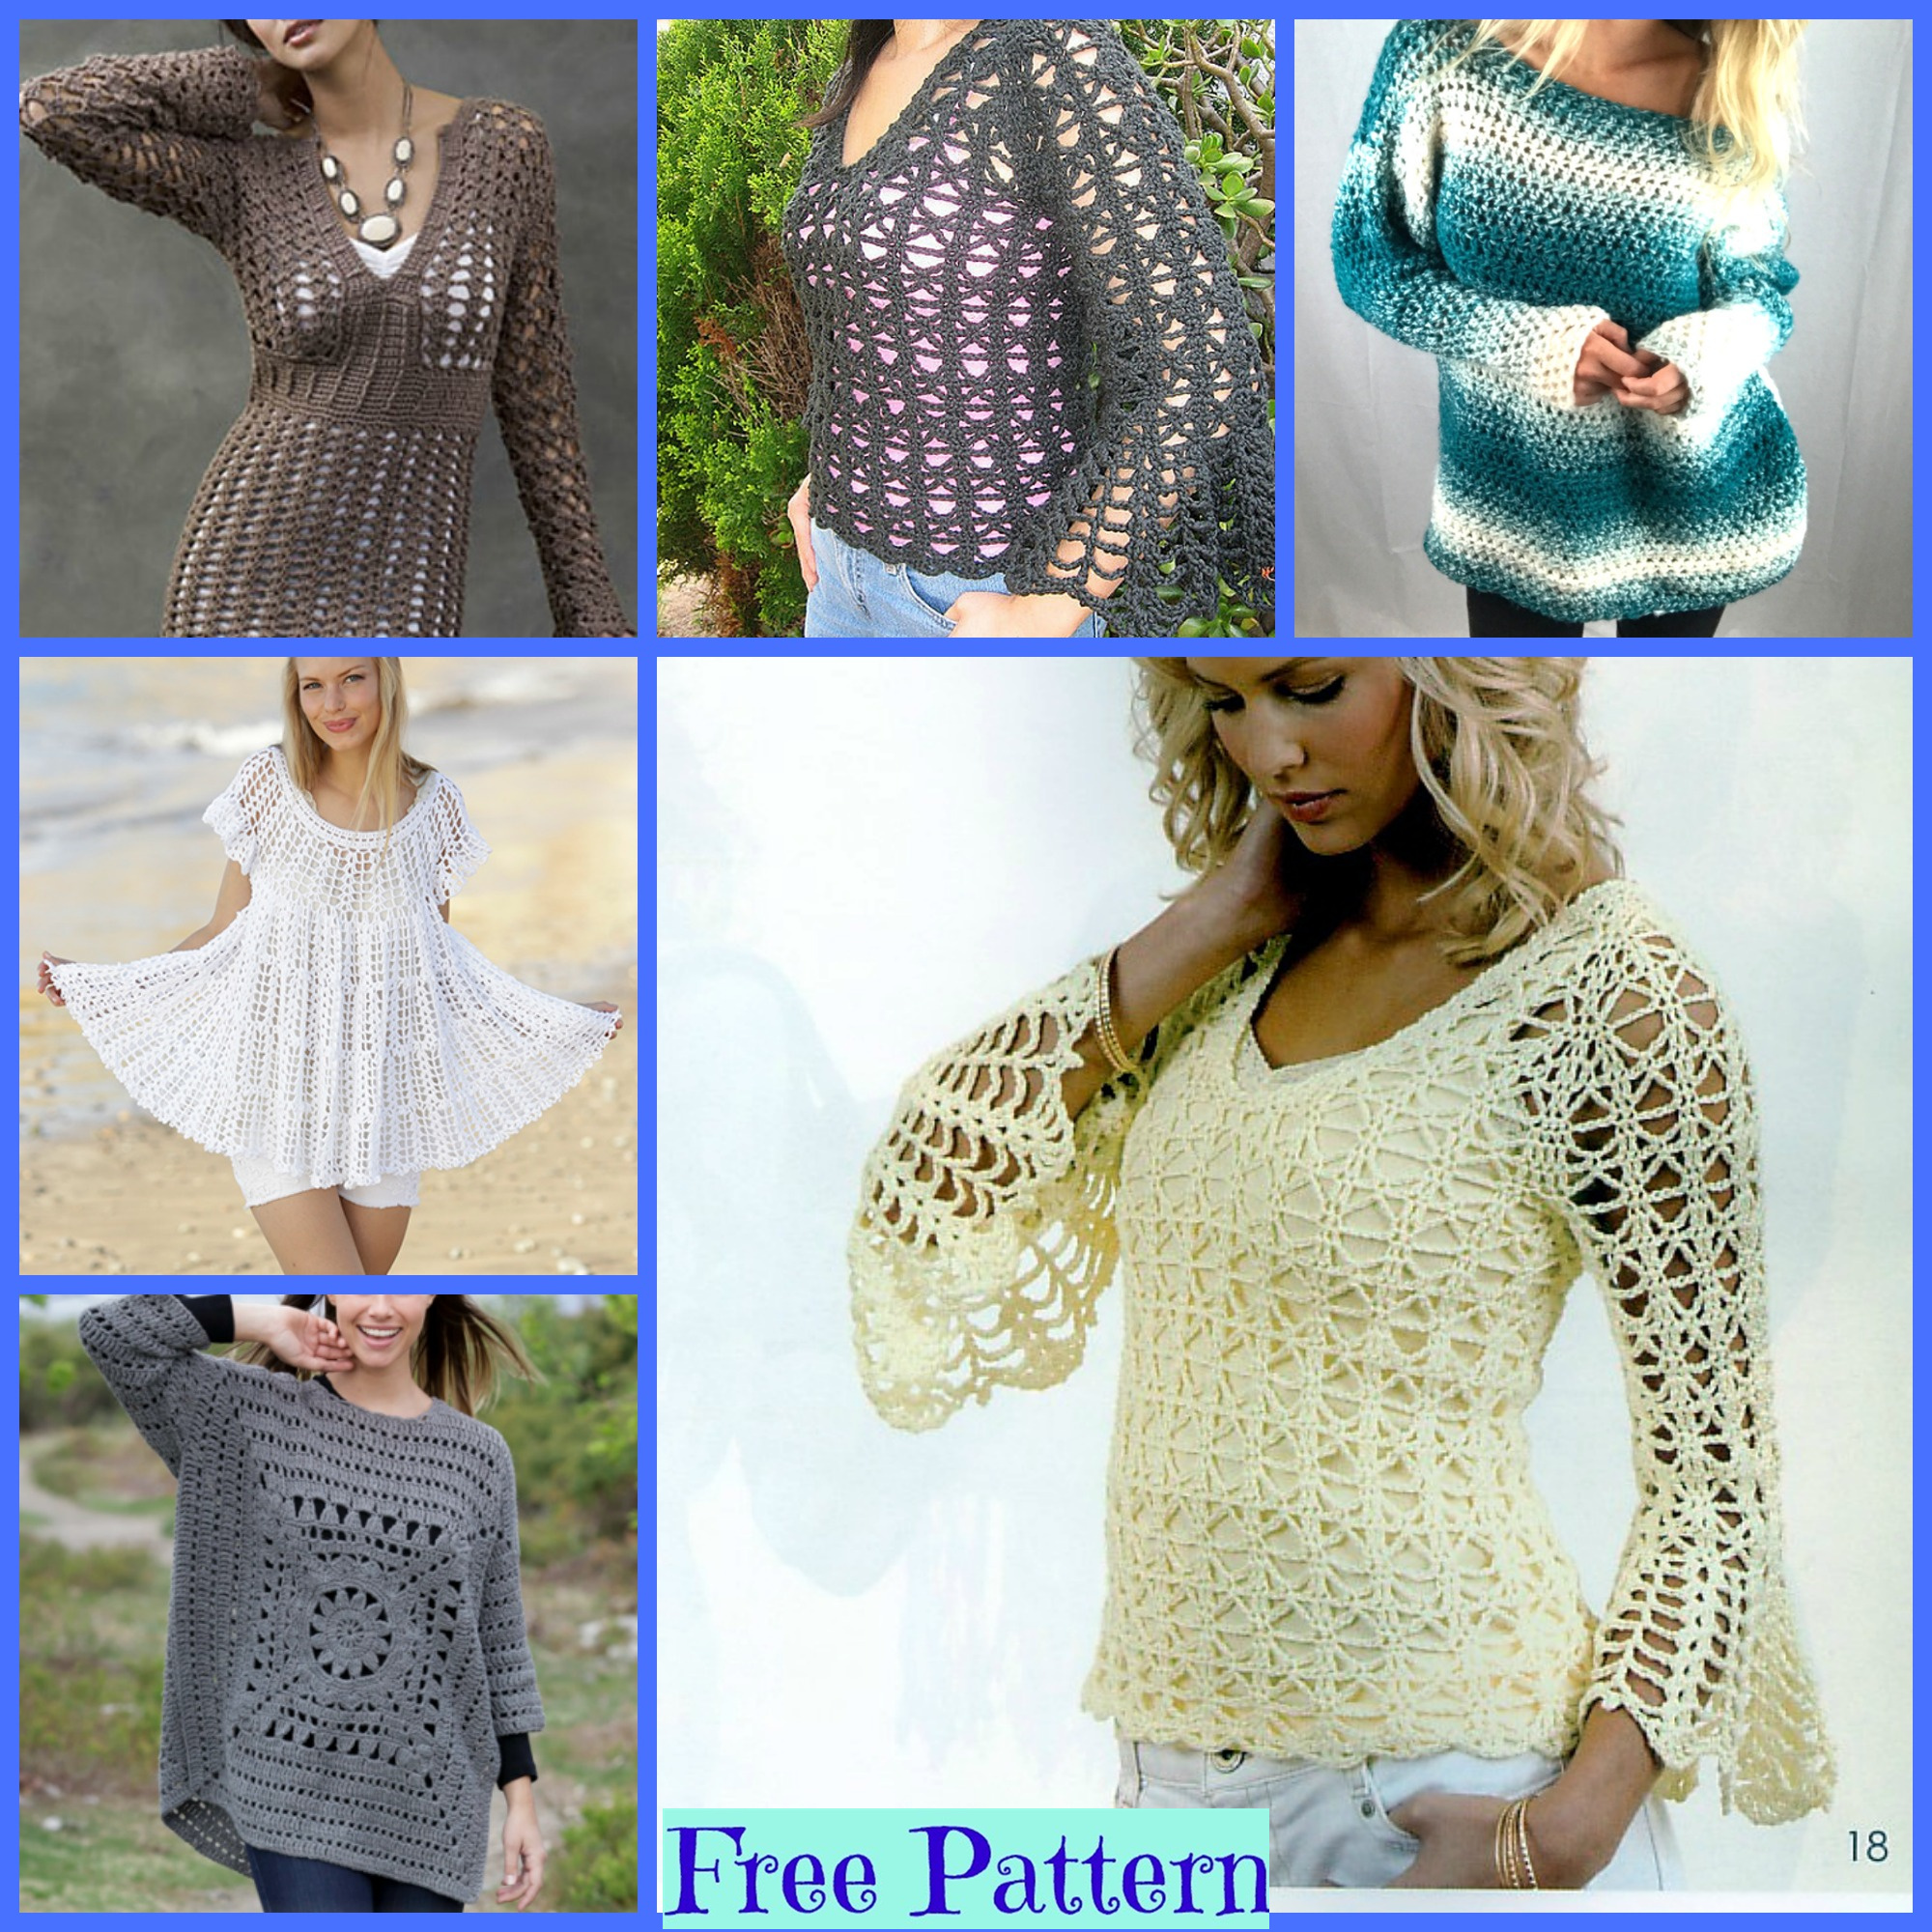 diy4ever-Pretty Crochet Sweaters - Free Patterns